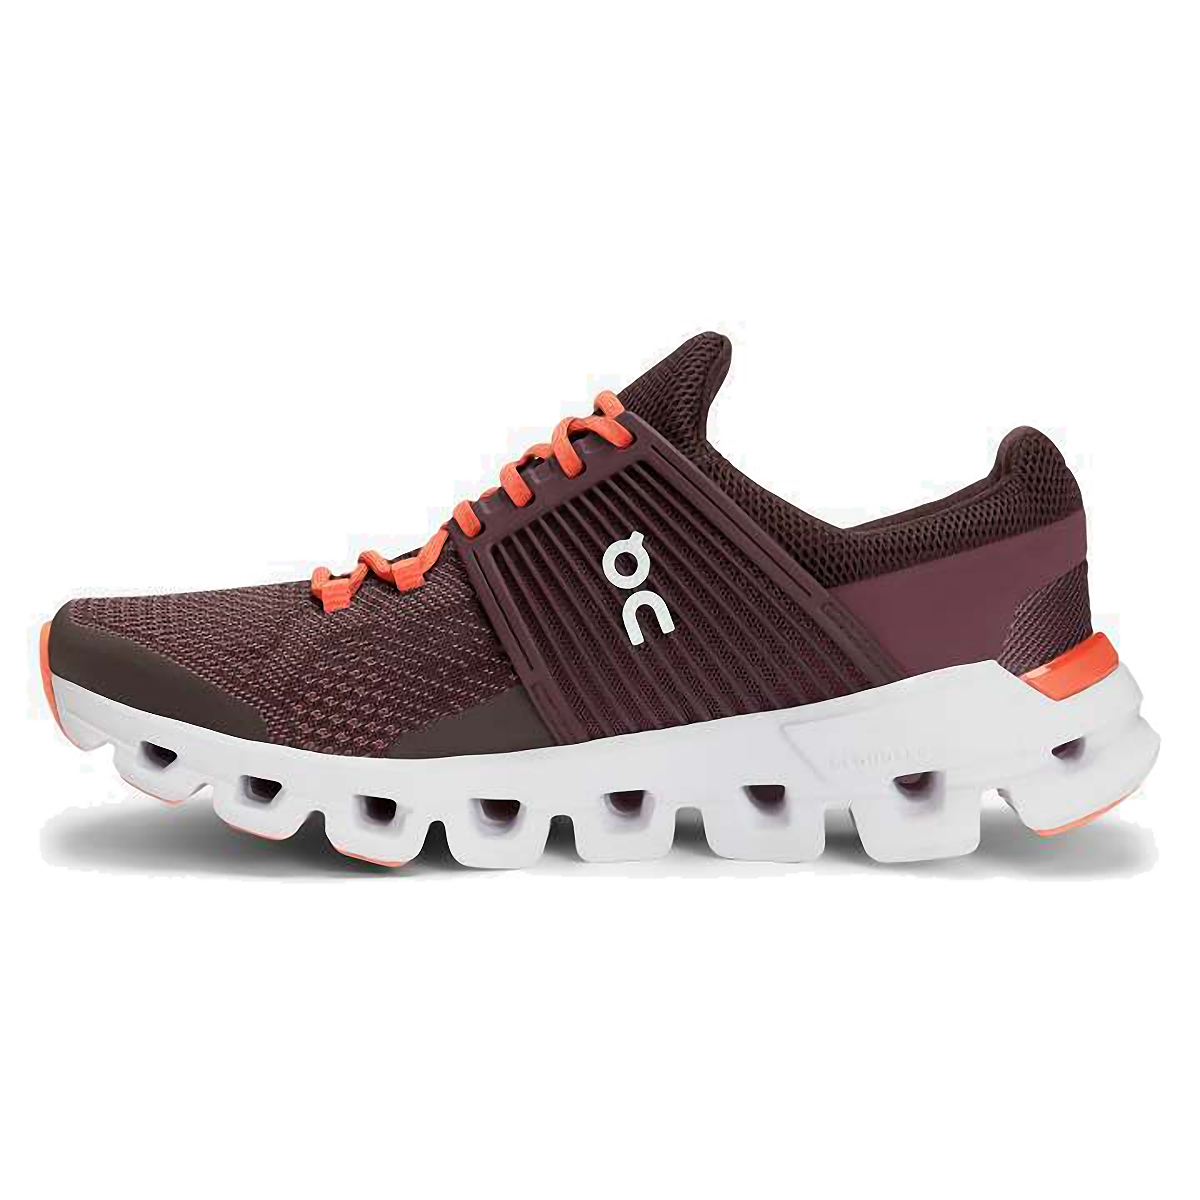 Women's On Cloudswift Running Shoe - Color: Plum/Dawn - Size: 6 - Width: Regular, Plum/Dawn, large, image 2